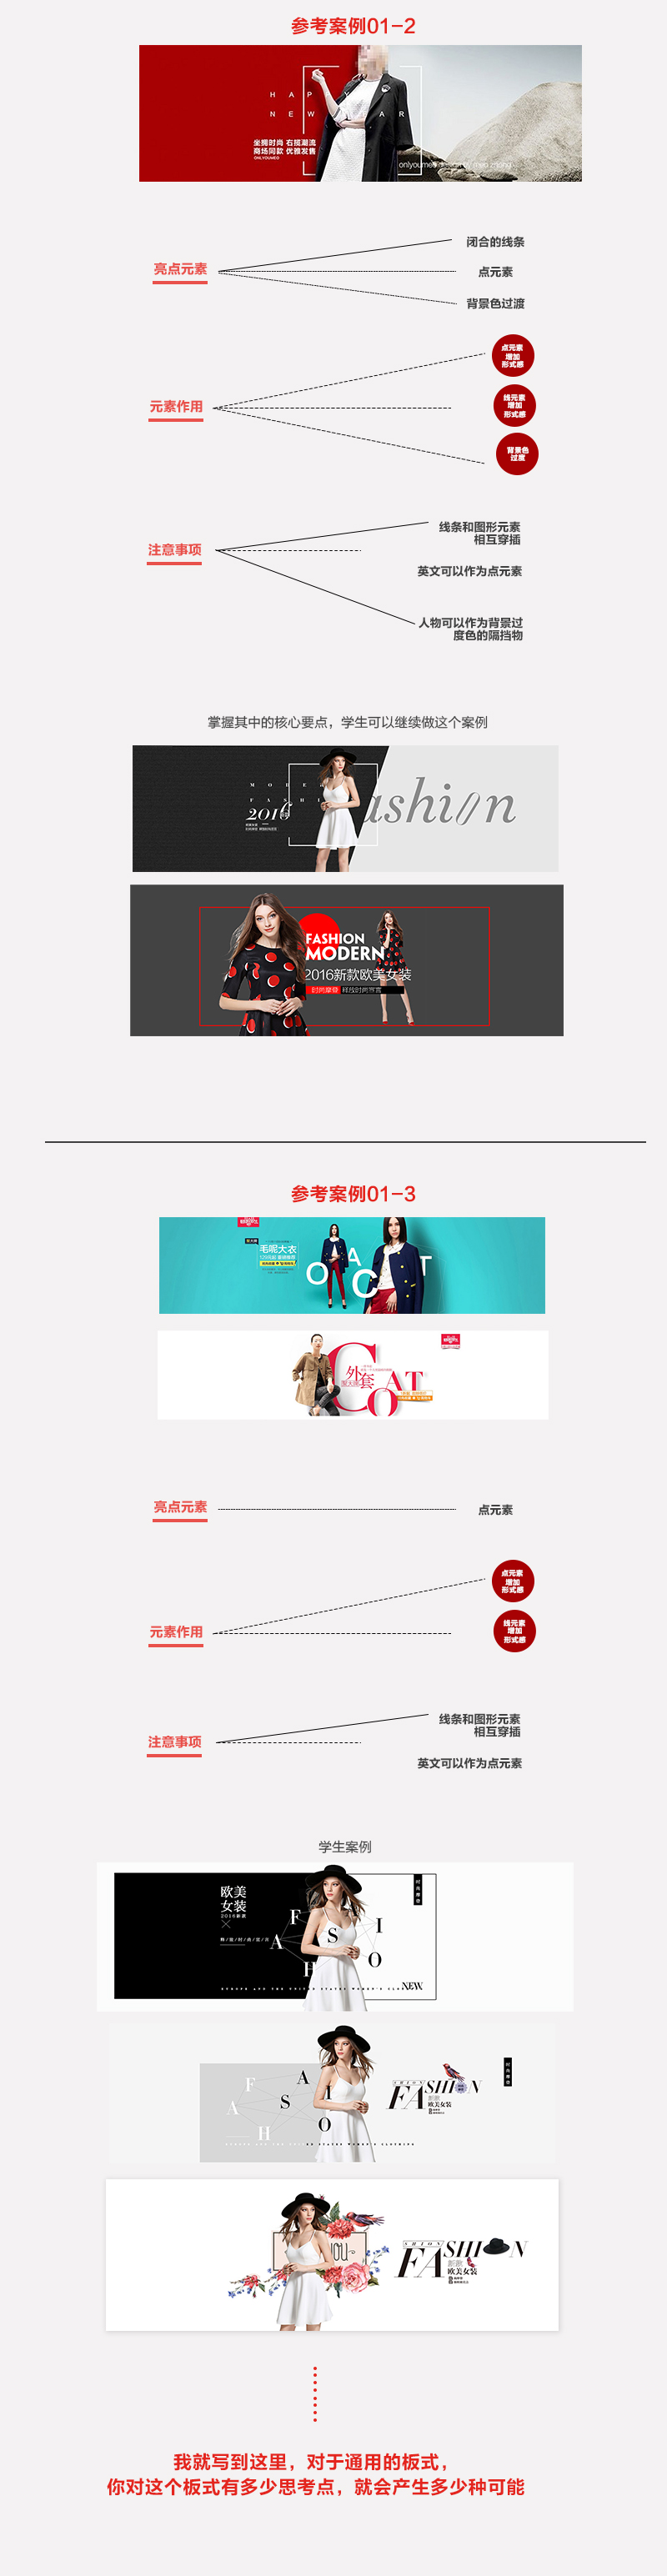 layout-design-main-elements_02